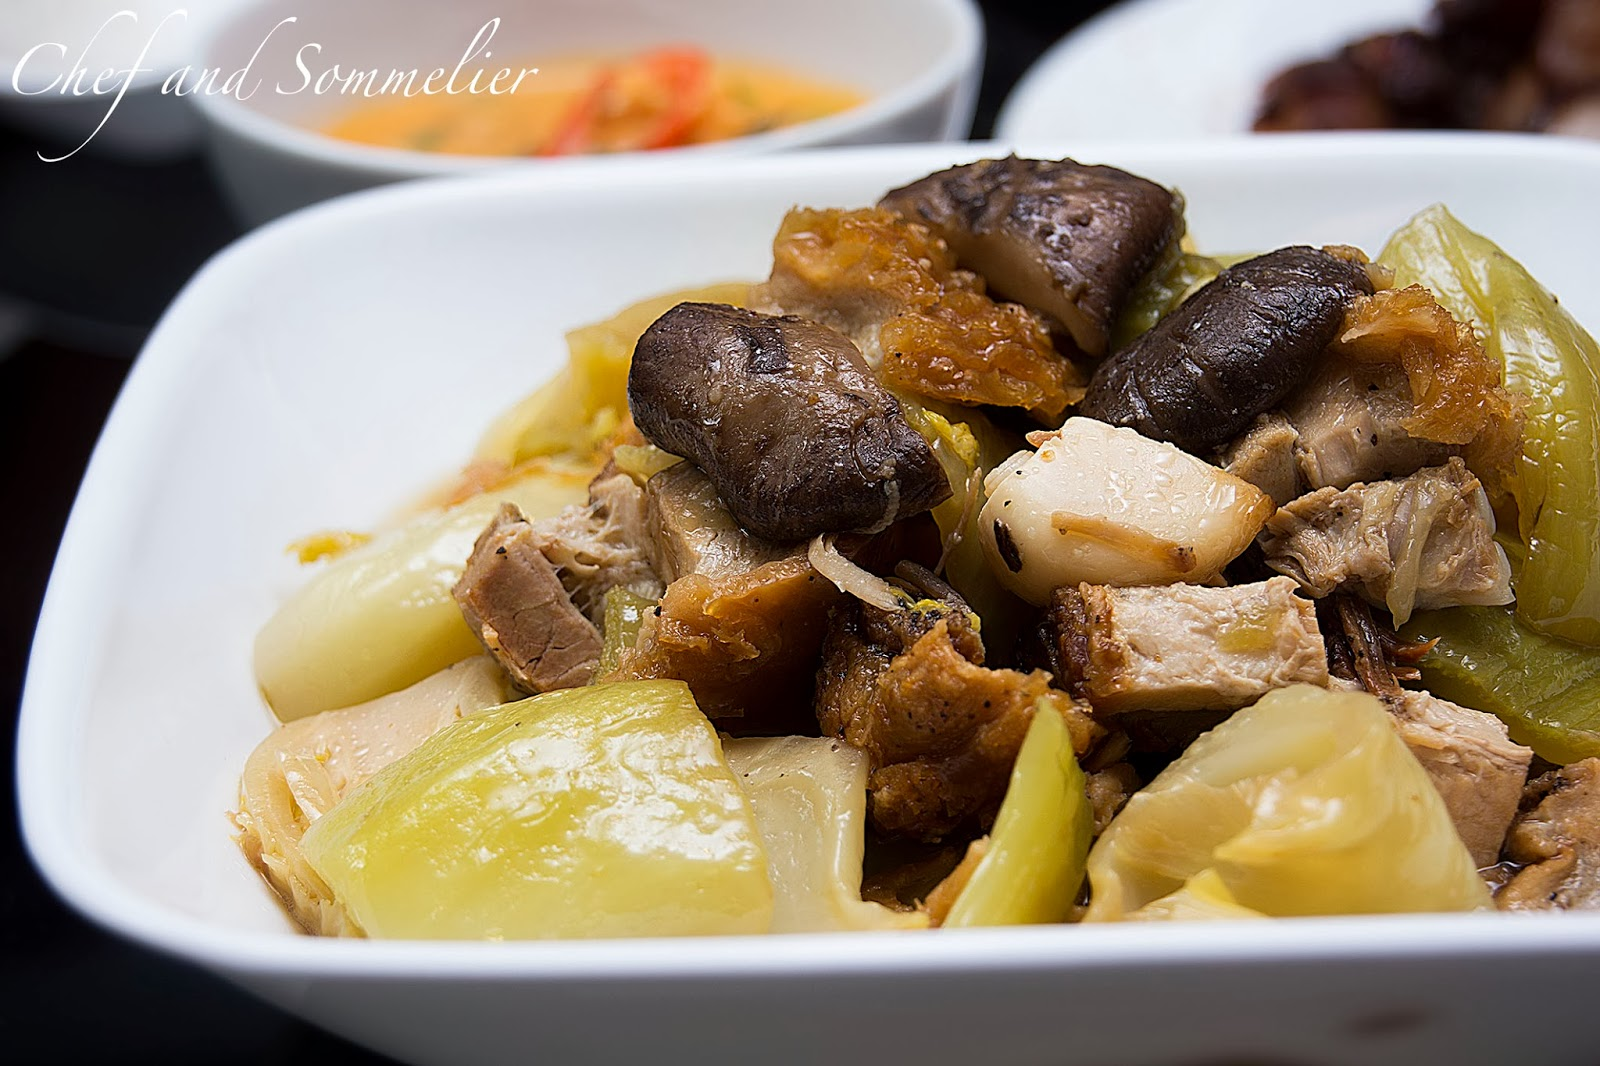 Braised Chinese Mustard Green With Roast Pork Mushrooms And Dried Scallops